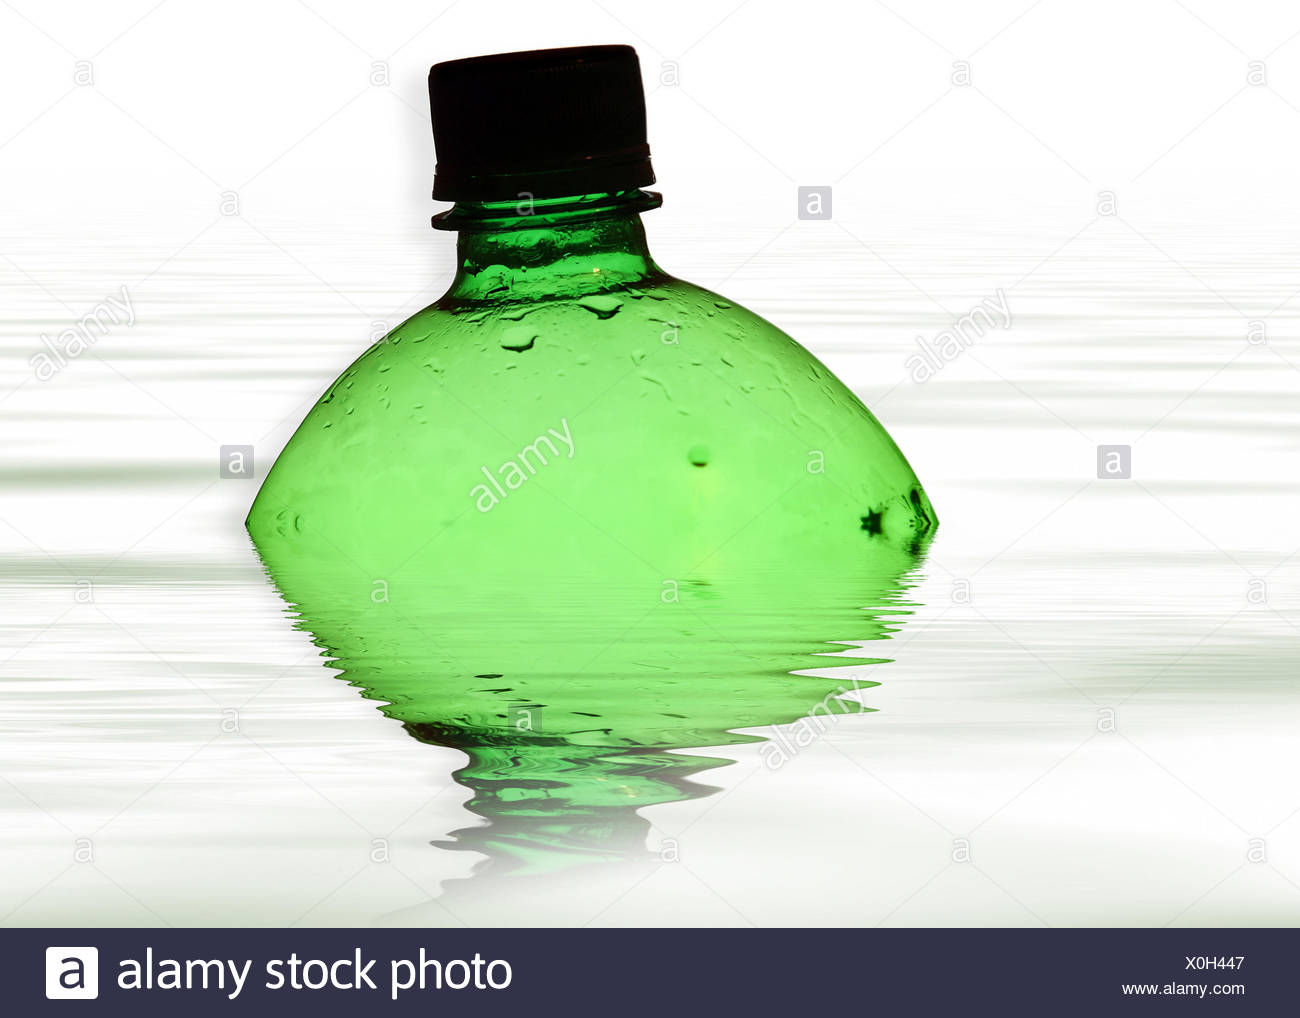 Green bottle floating in water - Stock Image